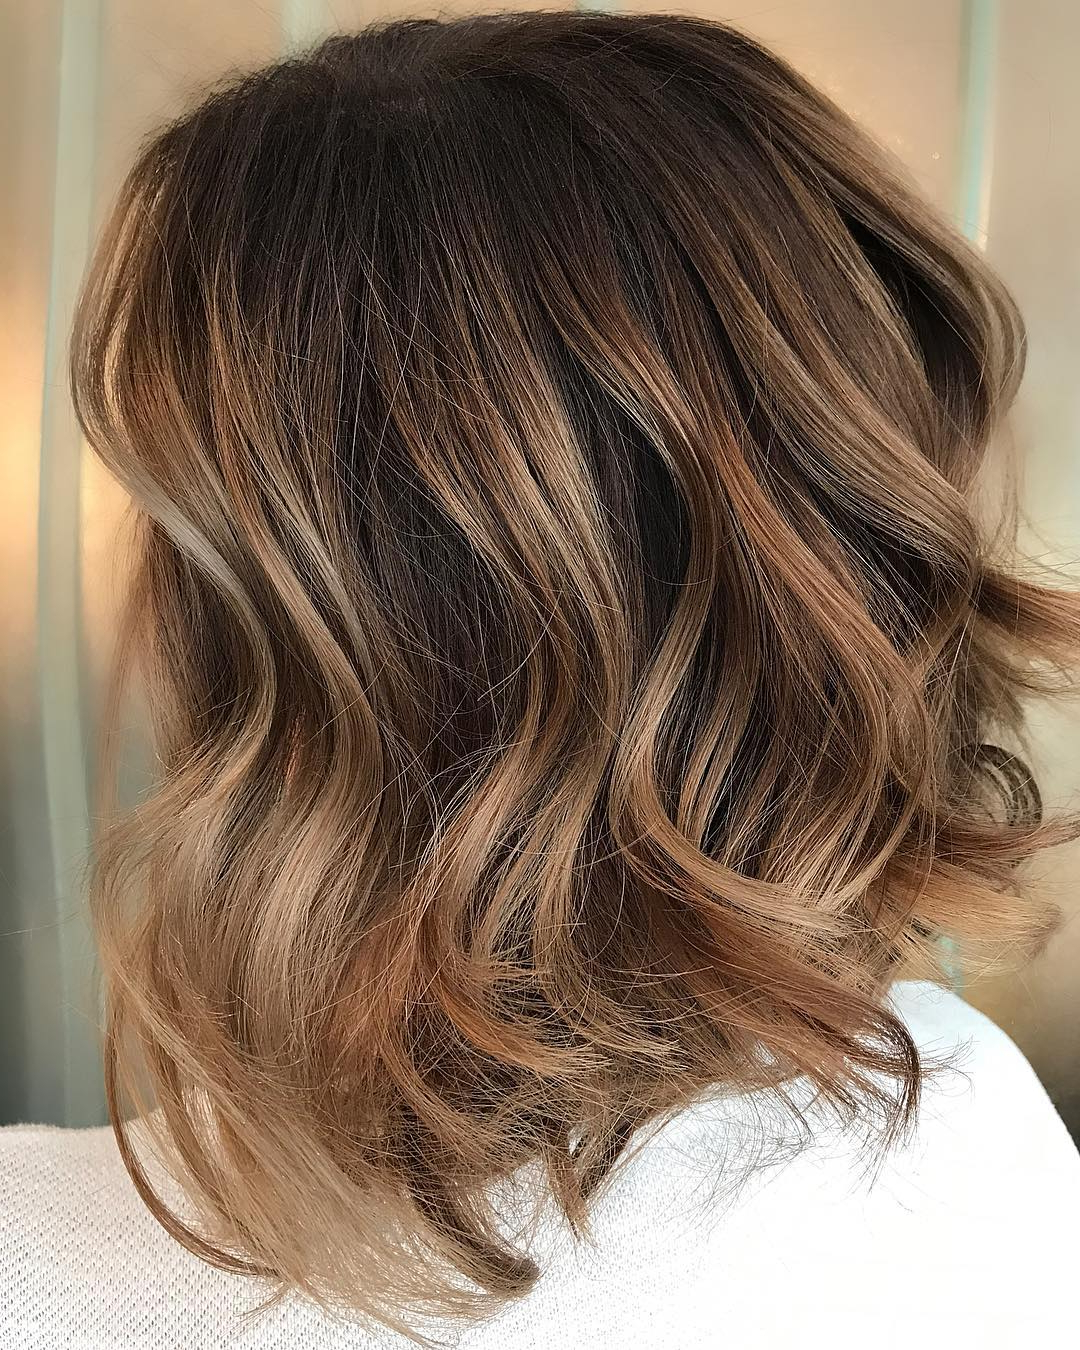 10 Trendy Brown Balayage Hairstyles For Medium Length Hair 2019 Regarding Most Popular Long Layered Light Chocolate Brown Haircuts (View 15 of 20)